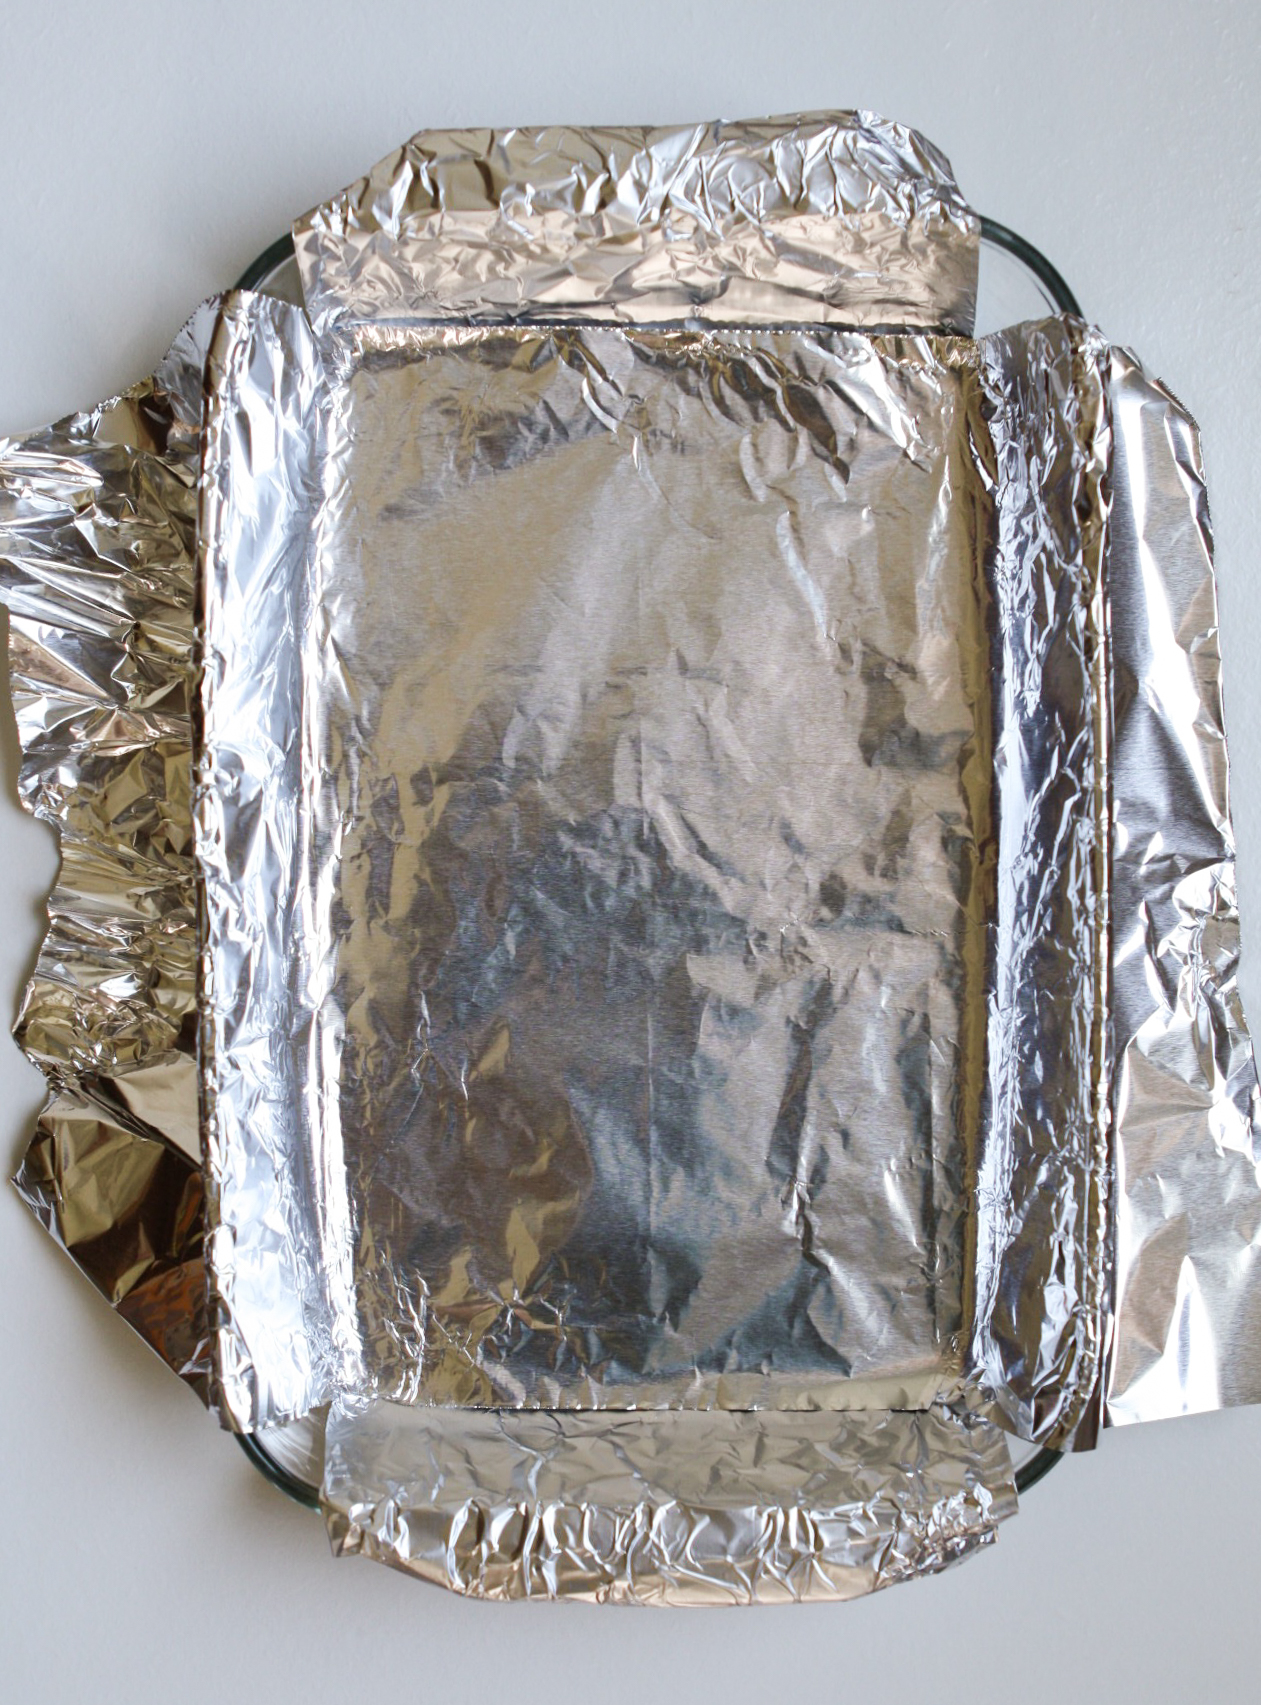 photograph of a foil-lined baking dish